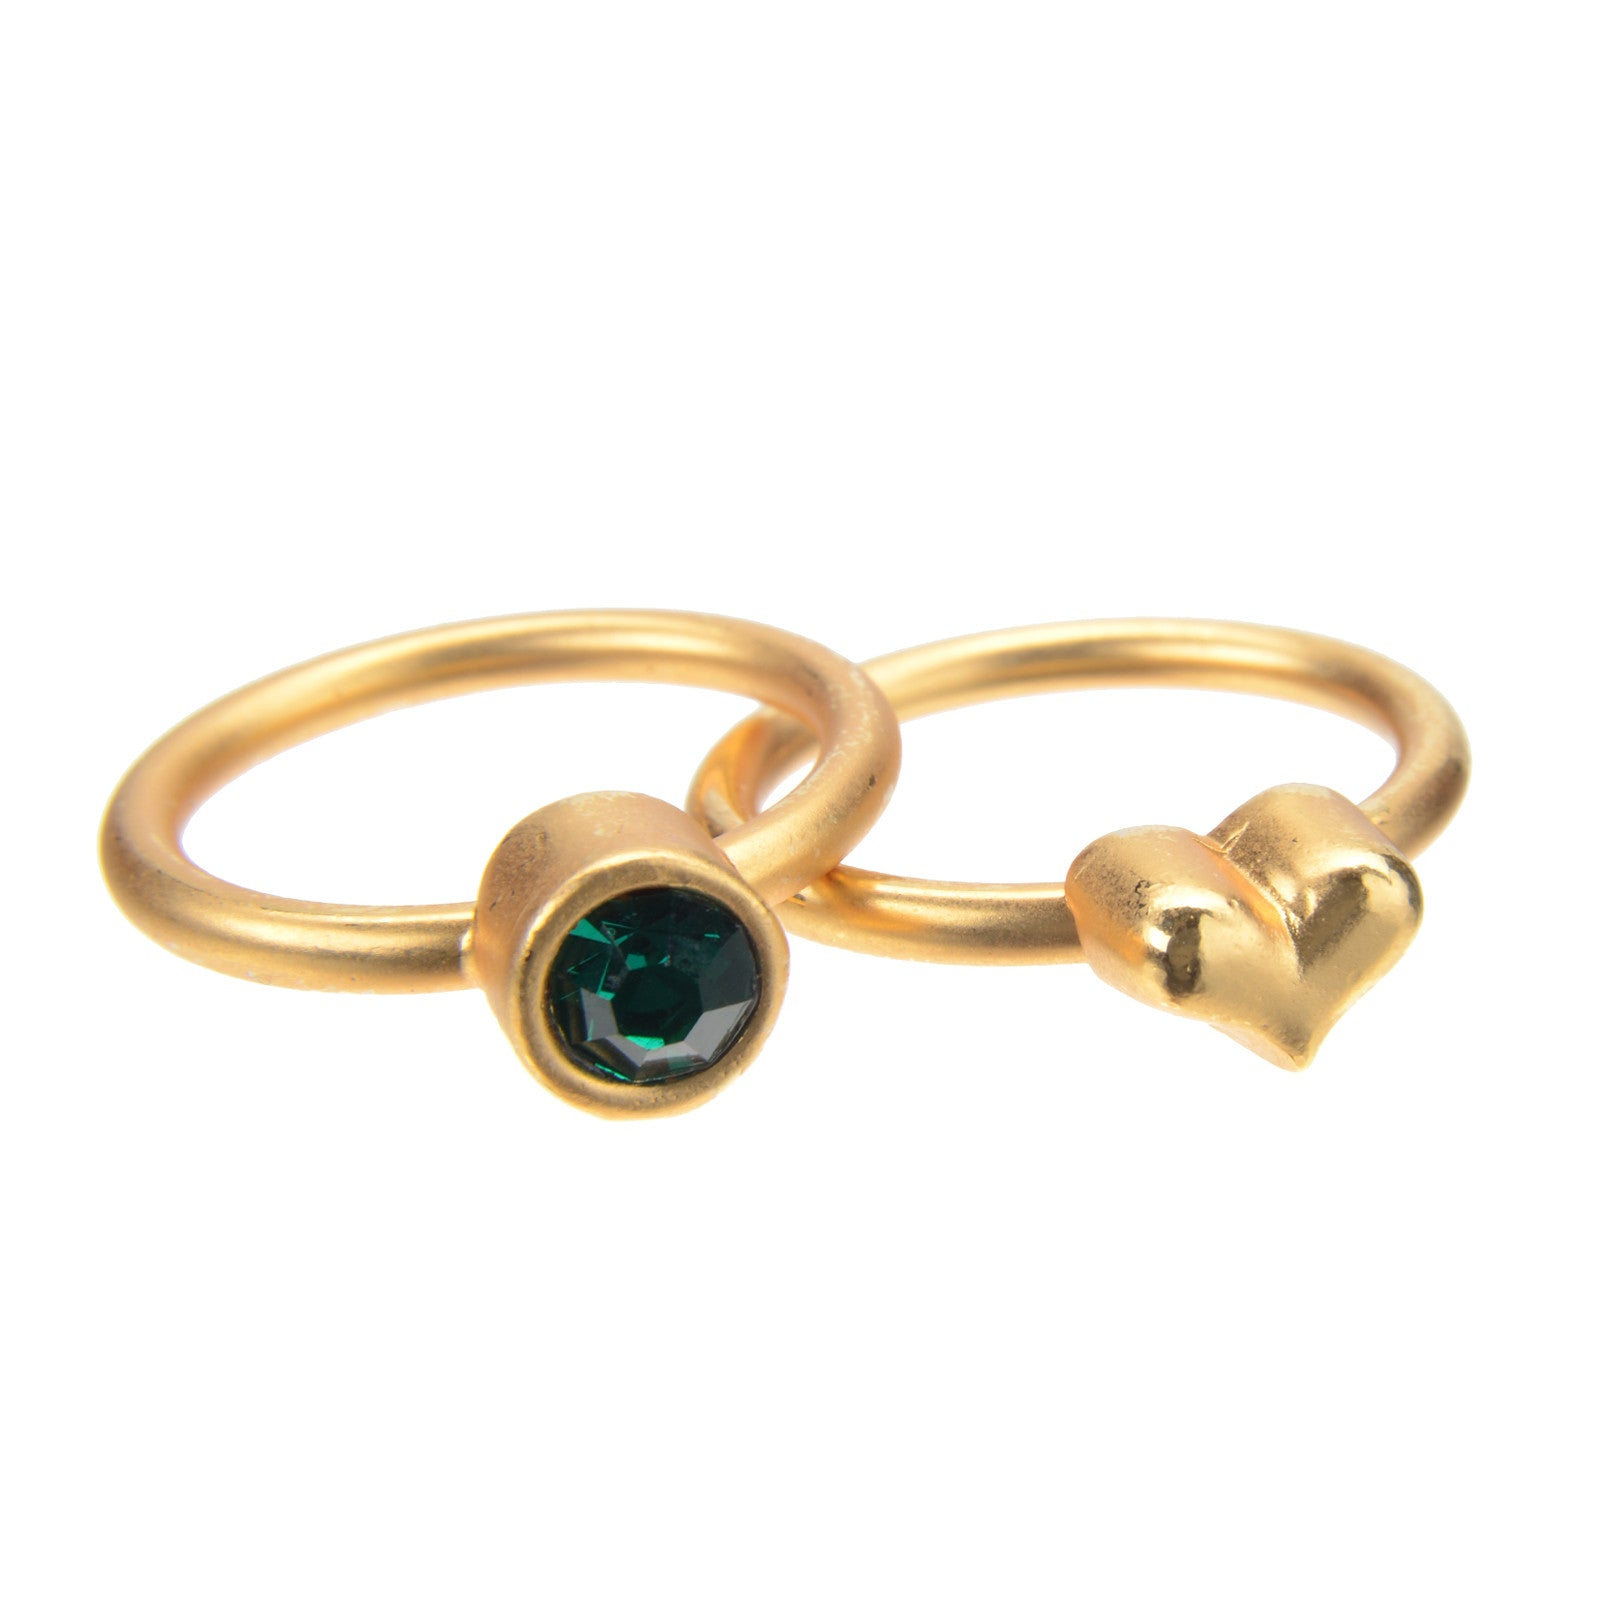 May Emerald Birthstone Ring Set - Whitney Howard Designs